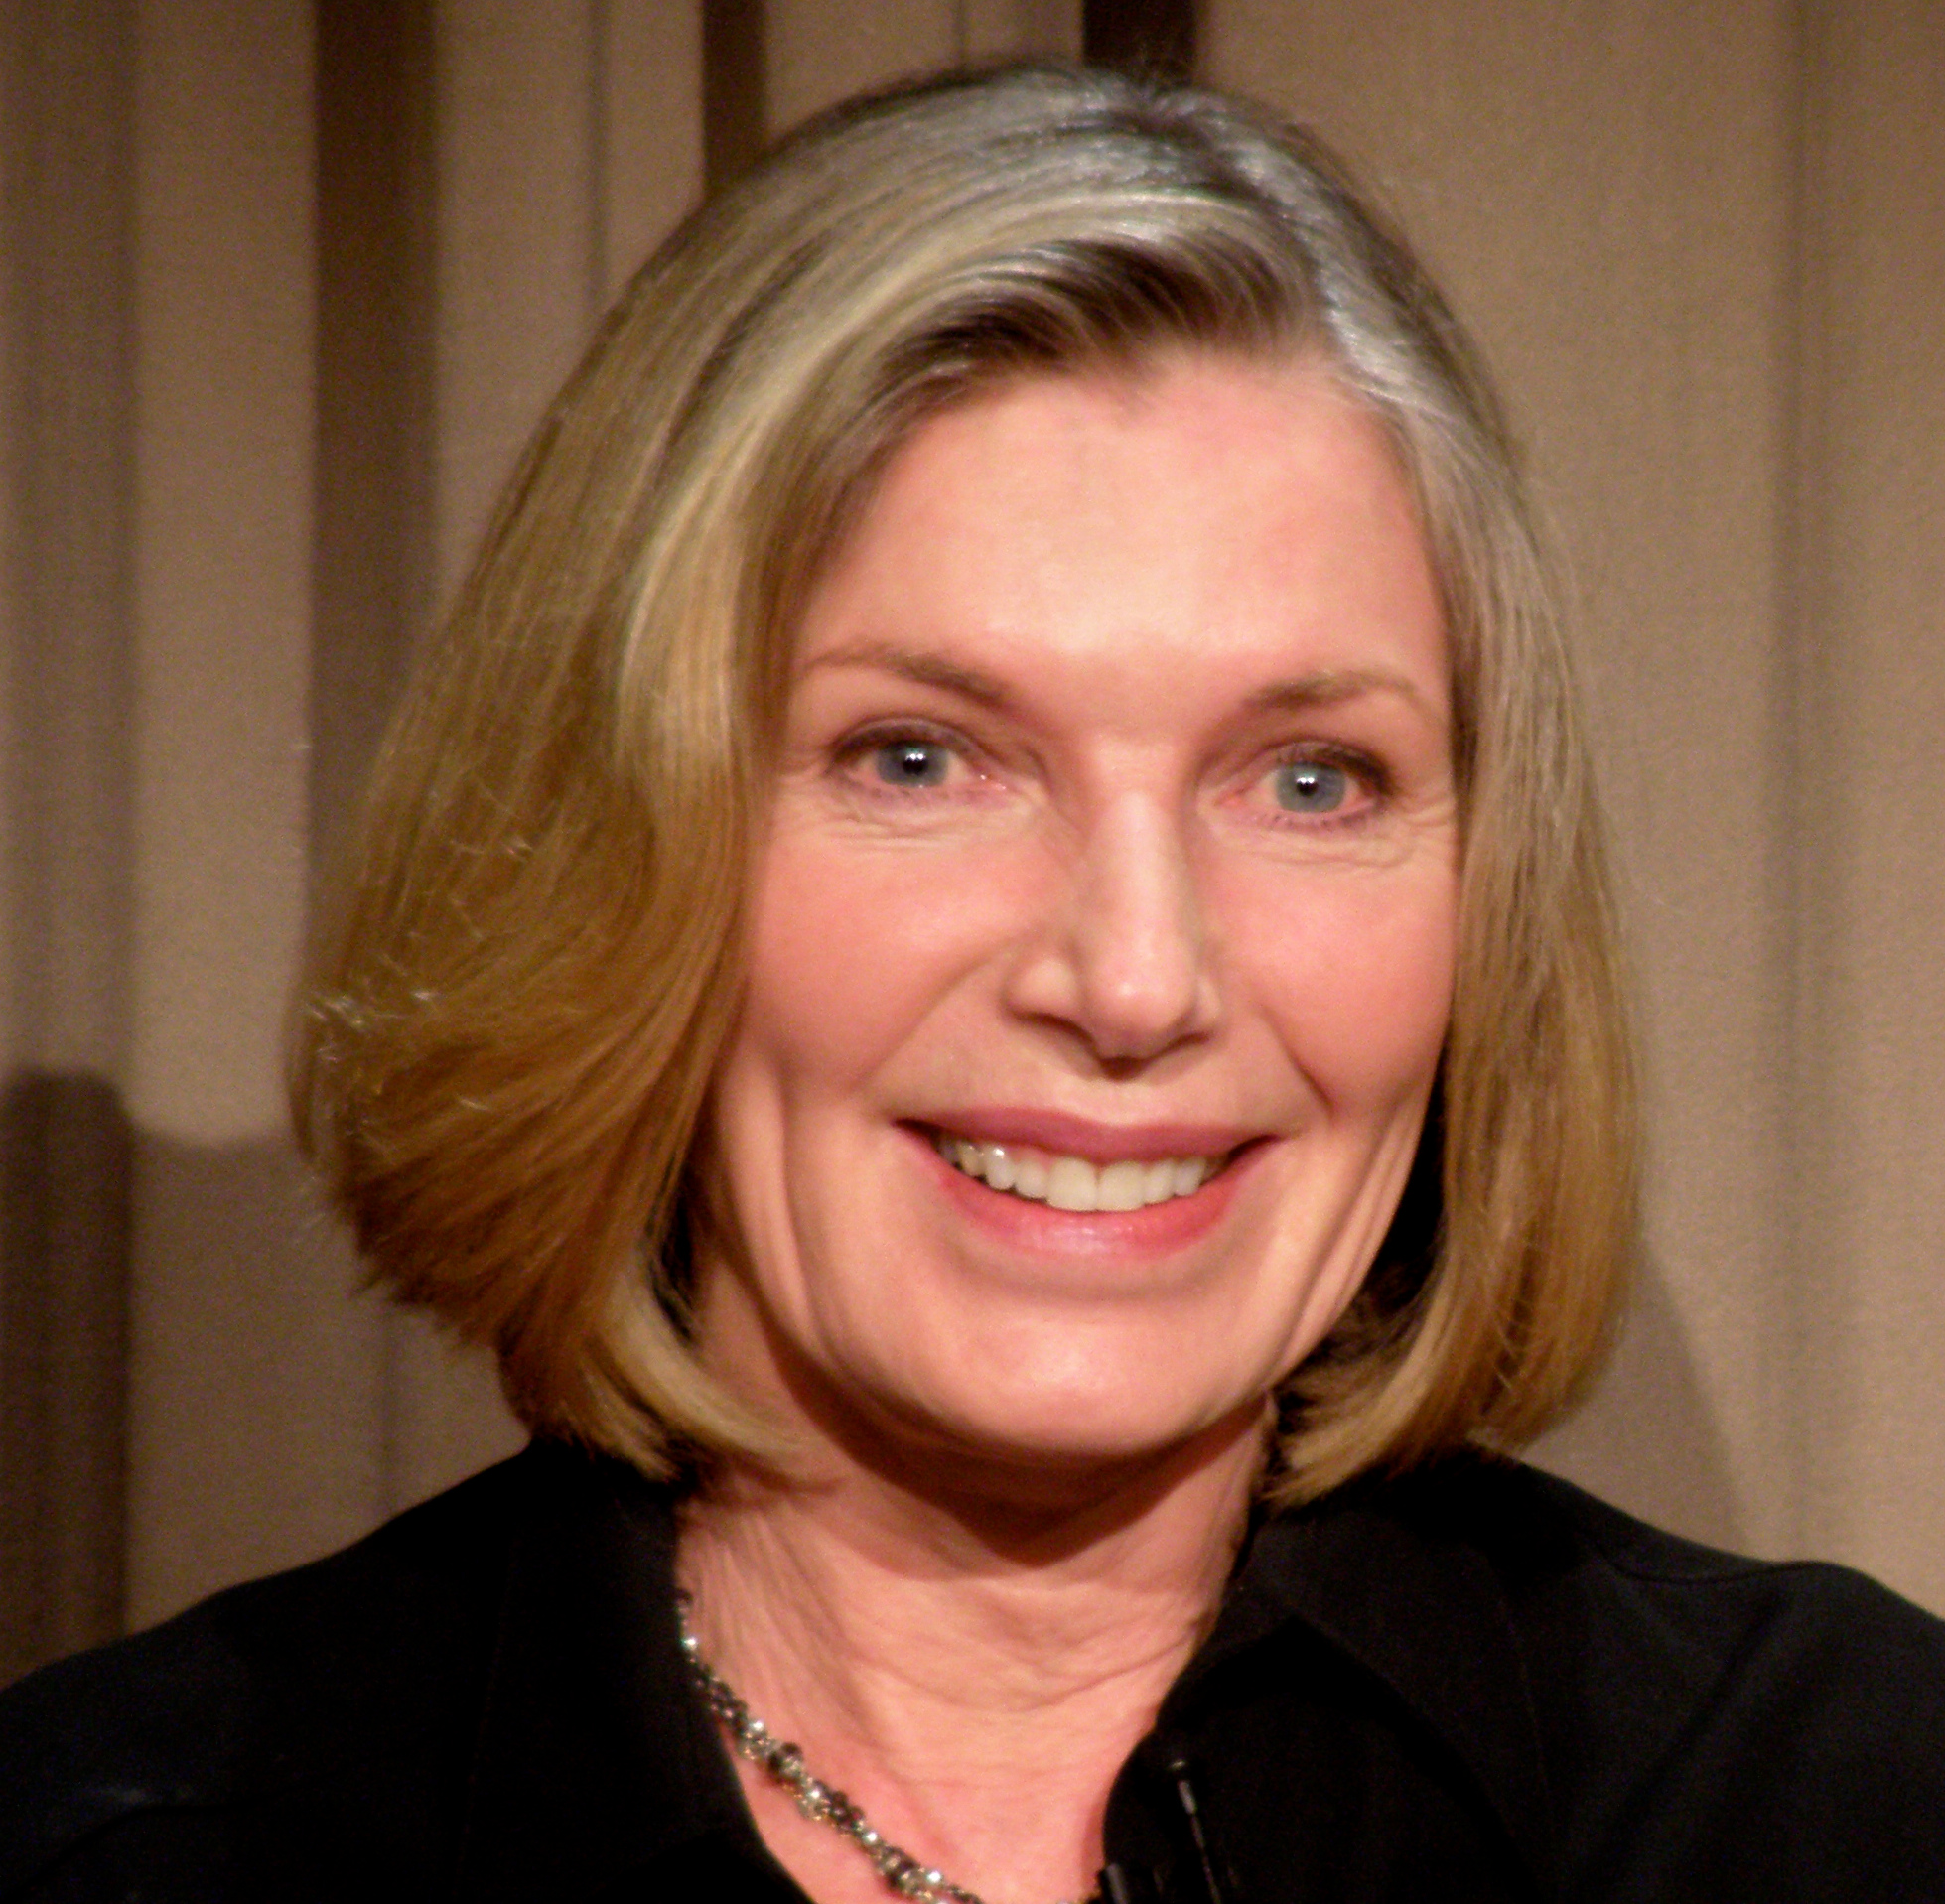 The 75-year old daughter of father (?) and mother(?) Susan Sullivan in 2018 photo. Susan Sullivan earned a  million dollar salary - leaving the net worth at 3 million in 2018